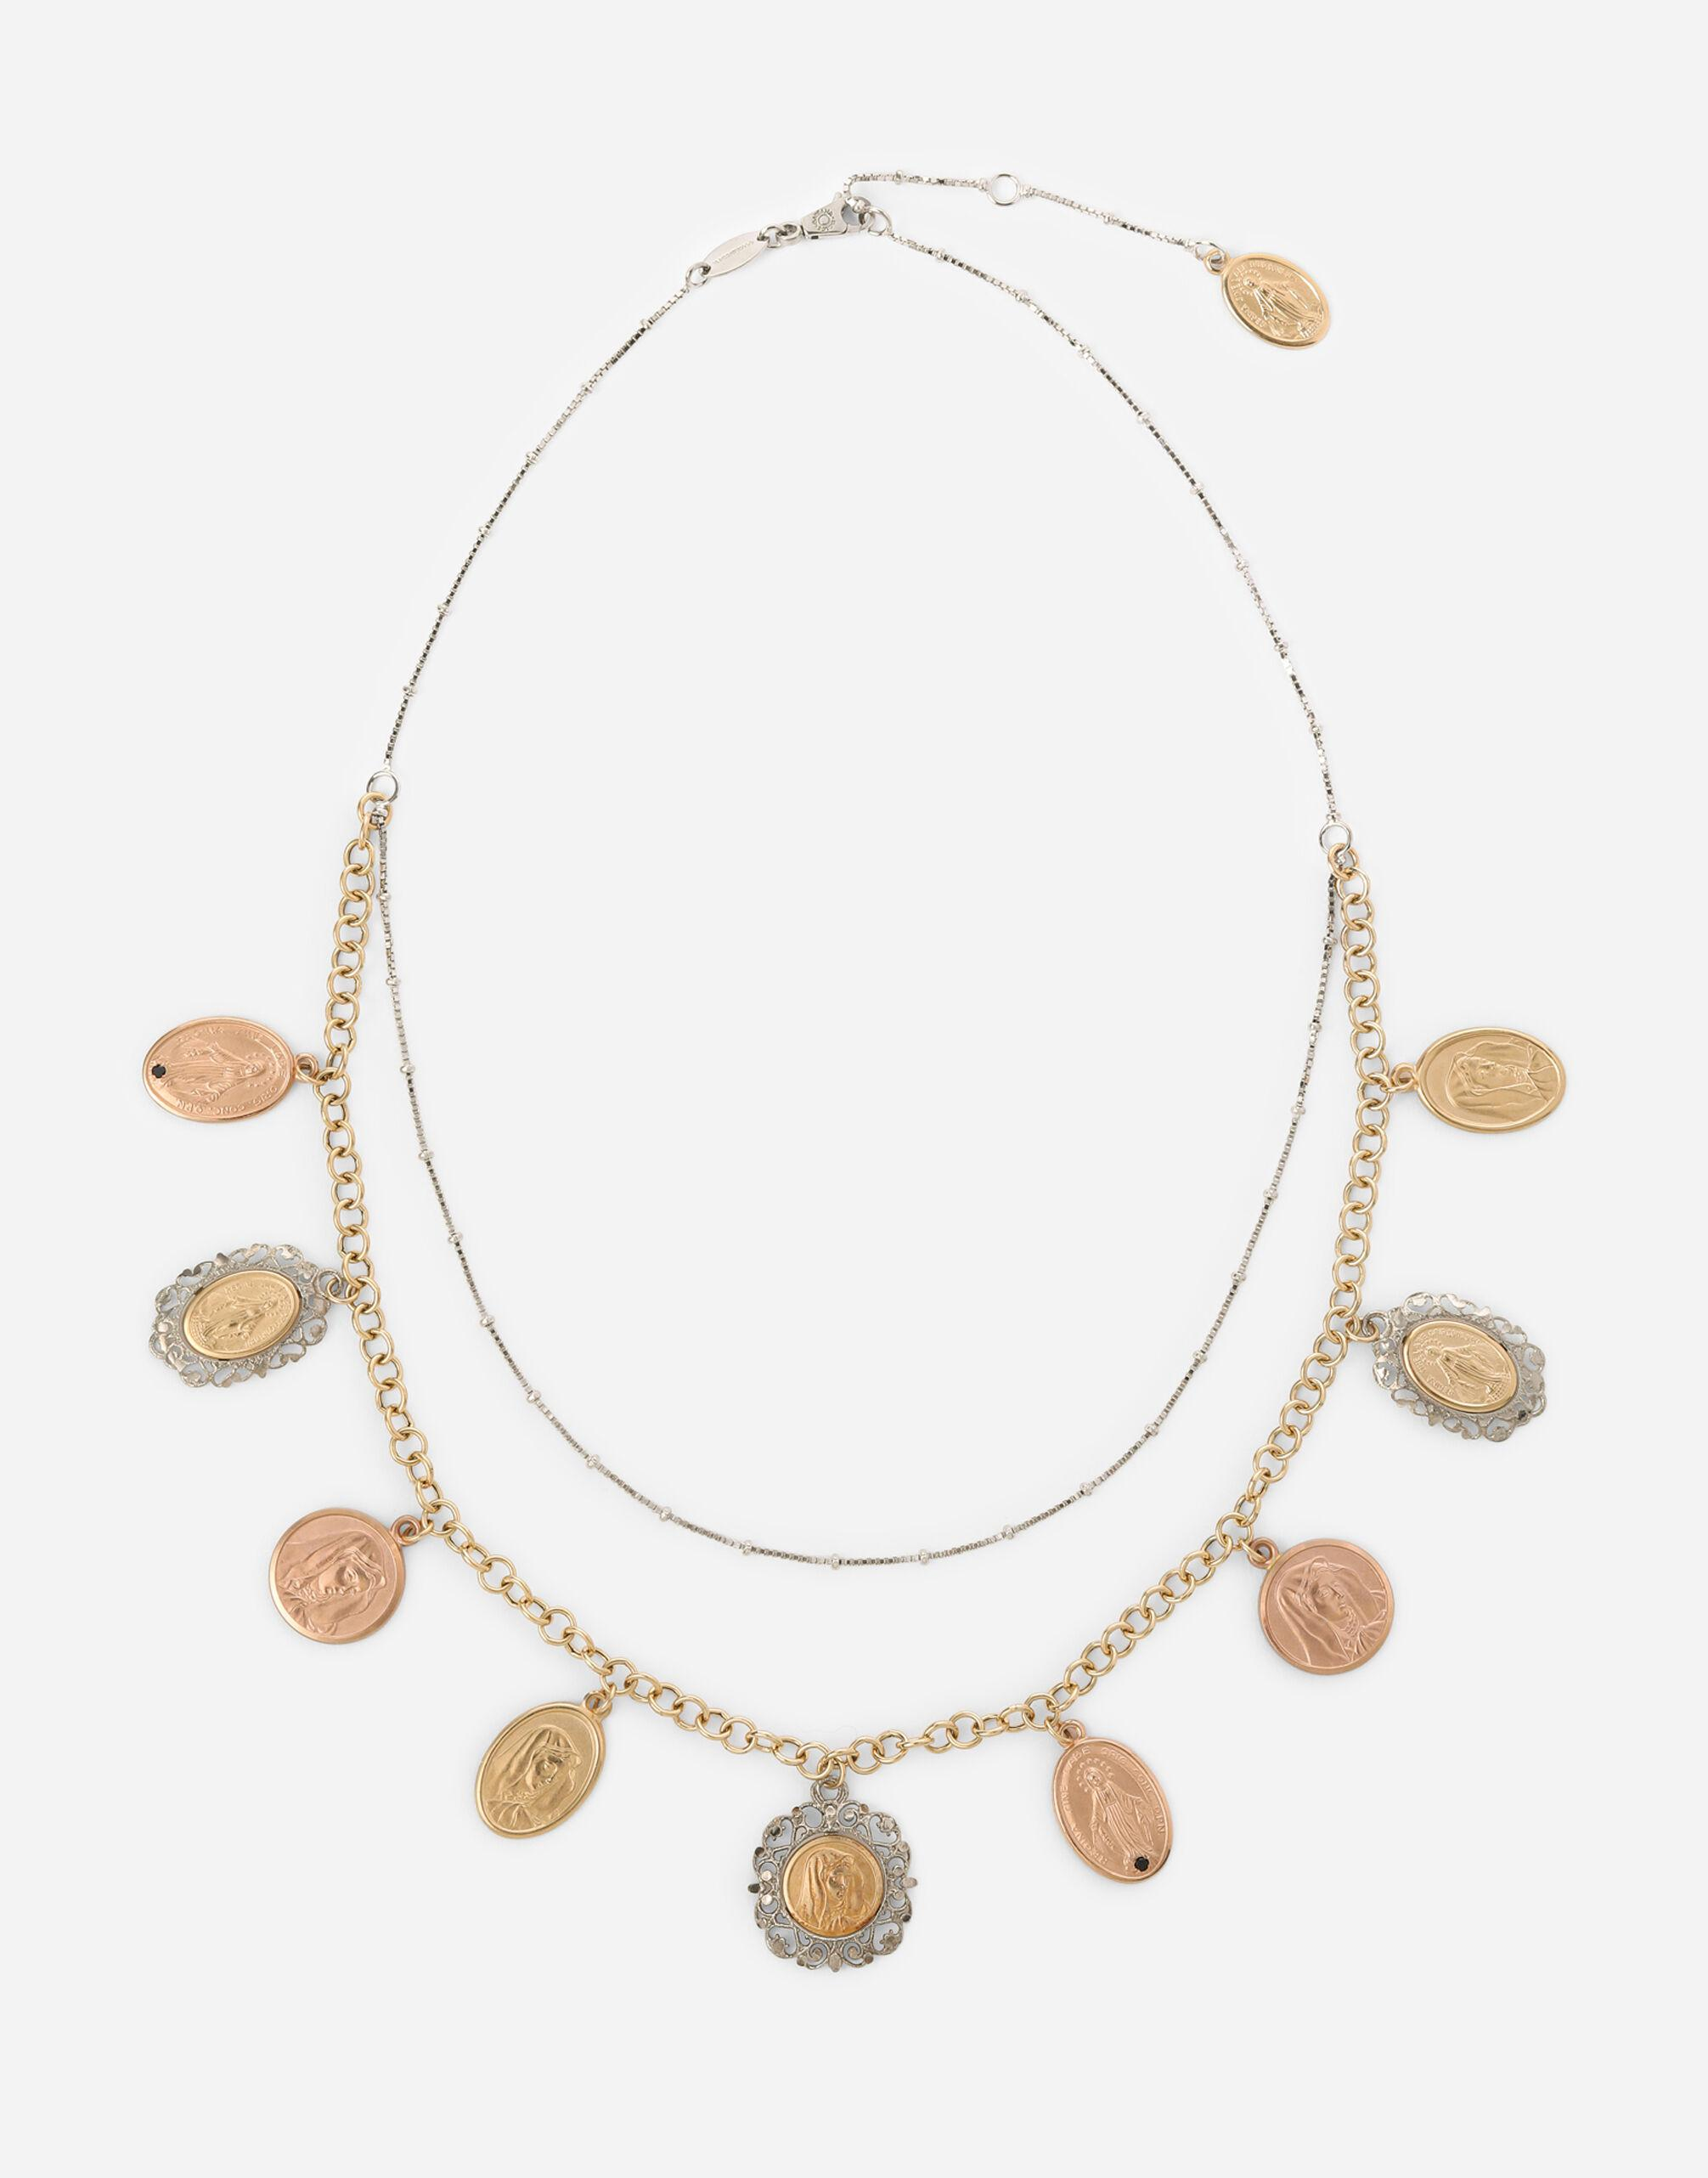 Sicily necklace in yellow, red and white 18kt gold with medals